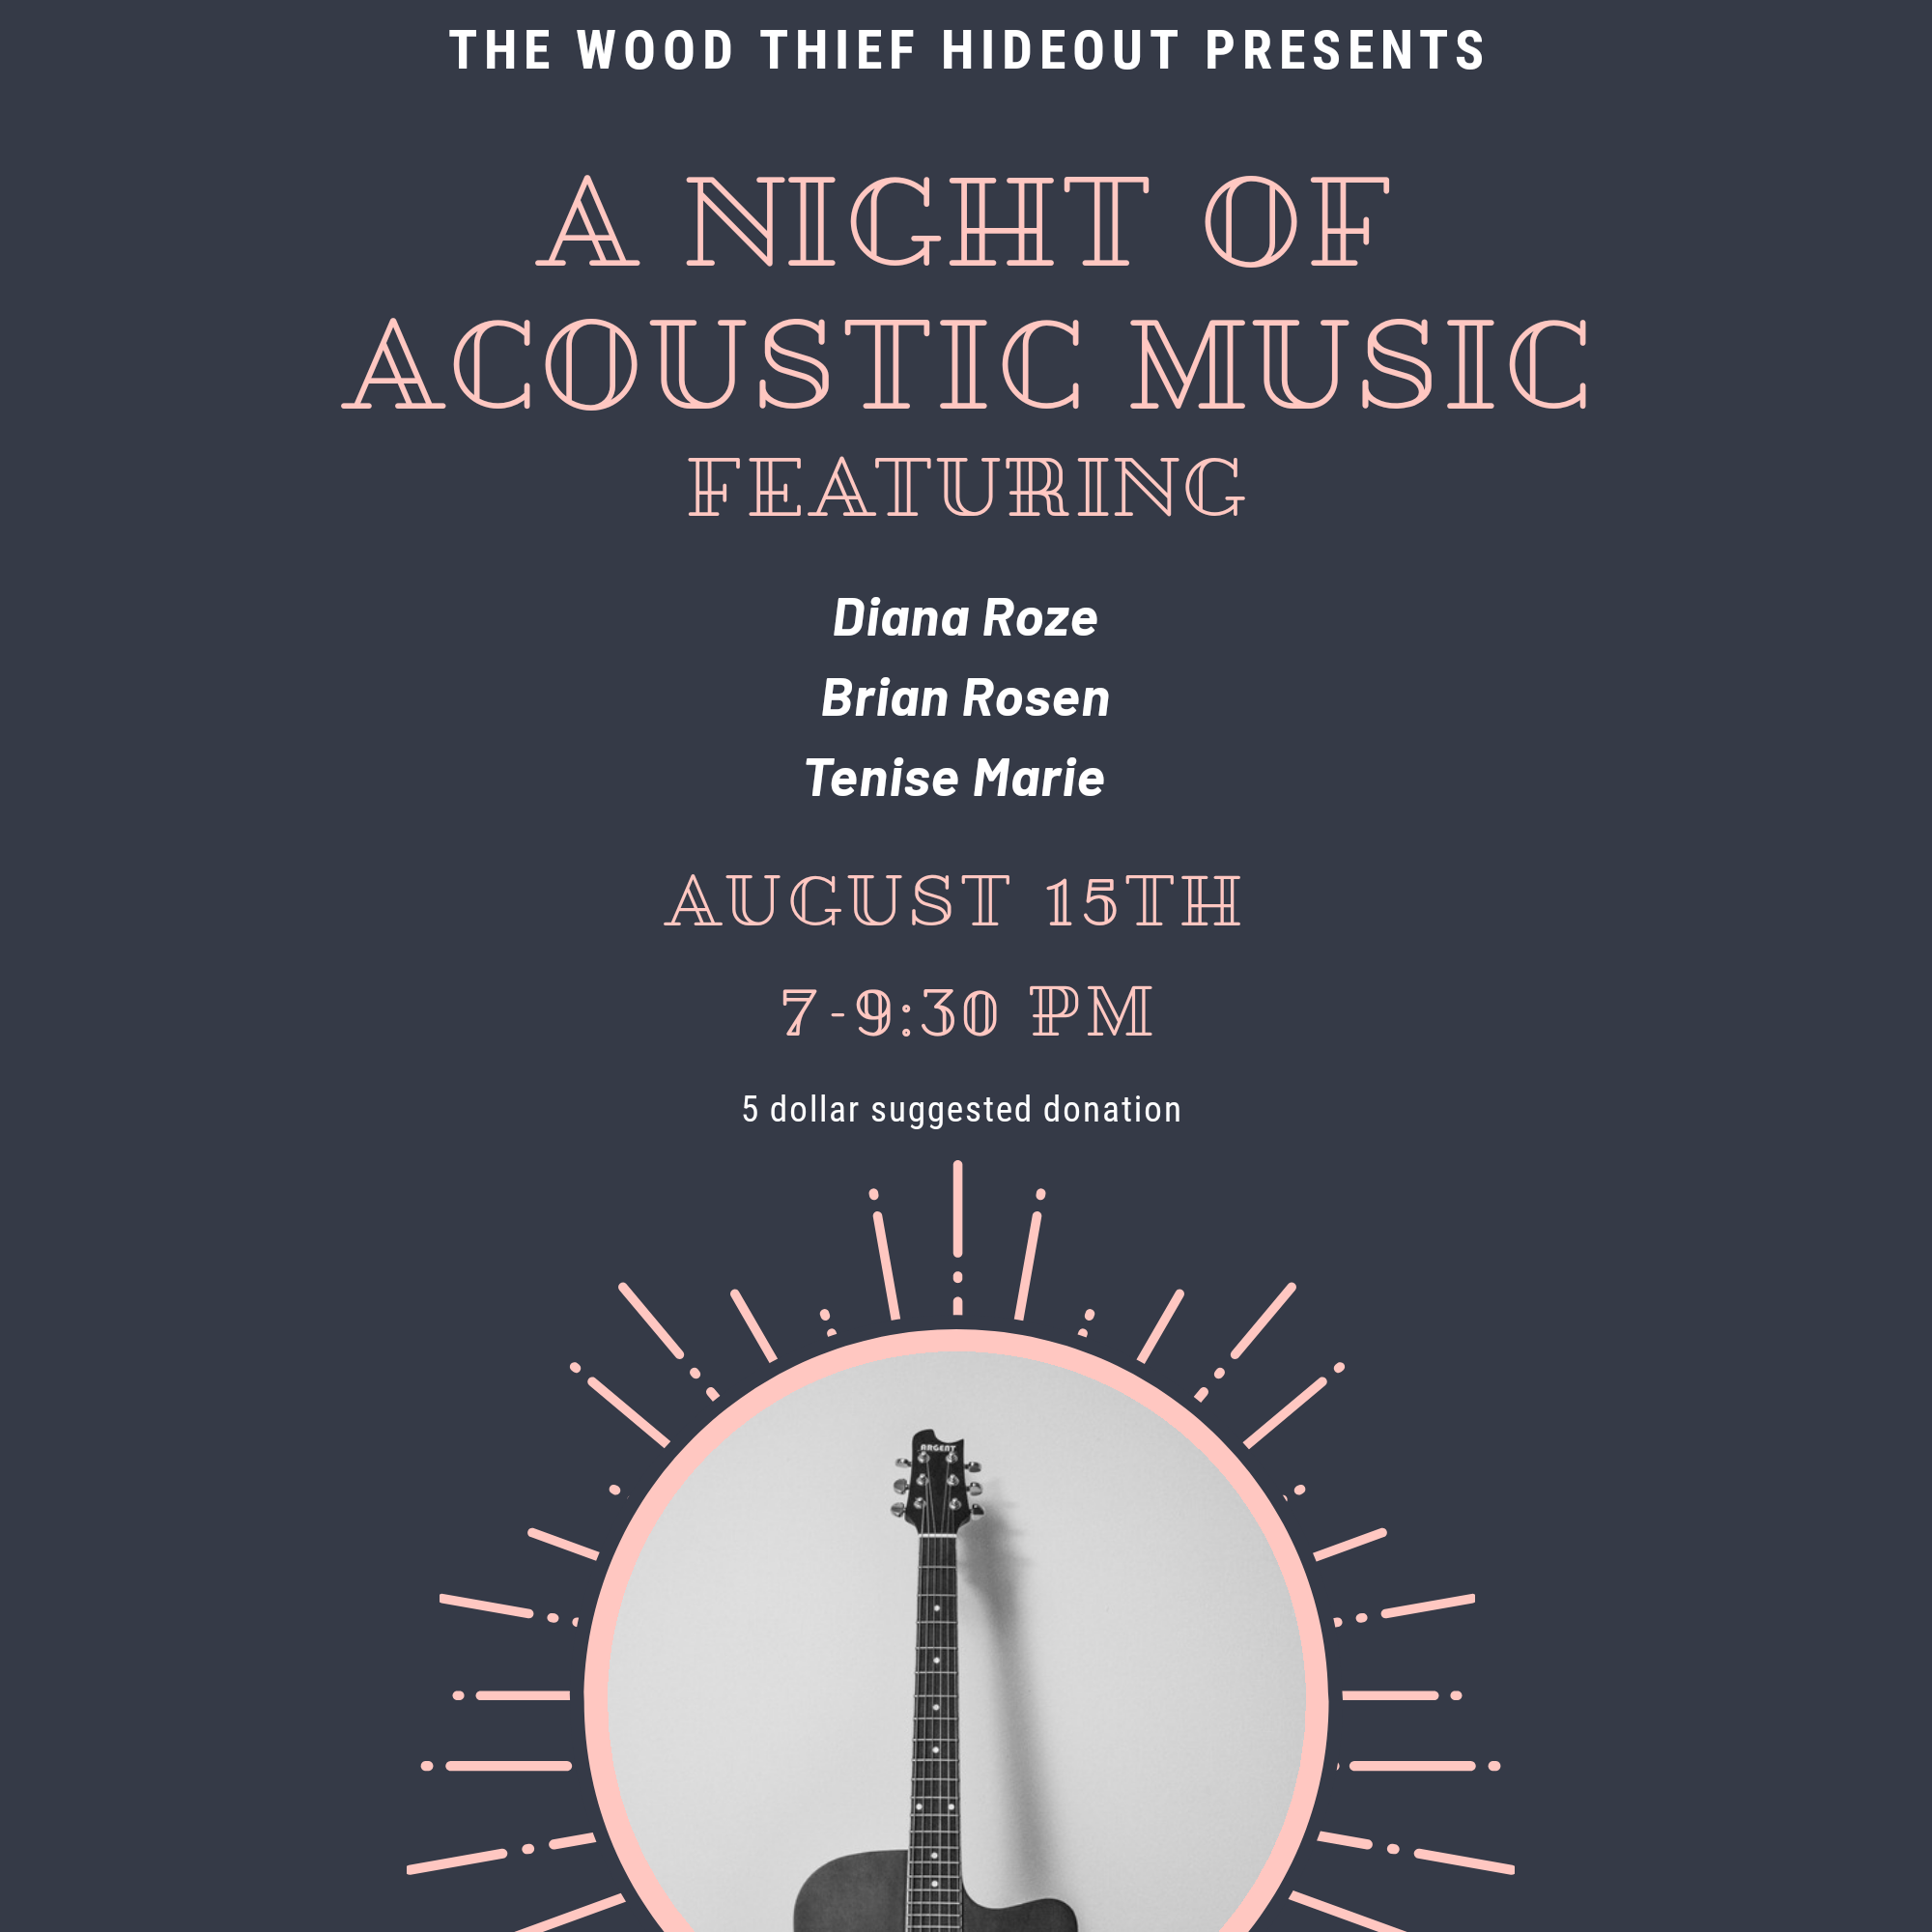 A Night of Acoustic Music @ Wood Thief Hideout